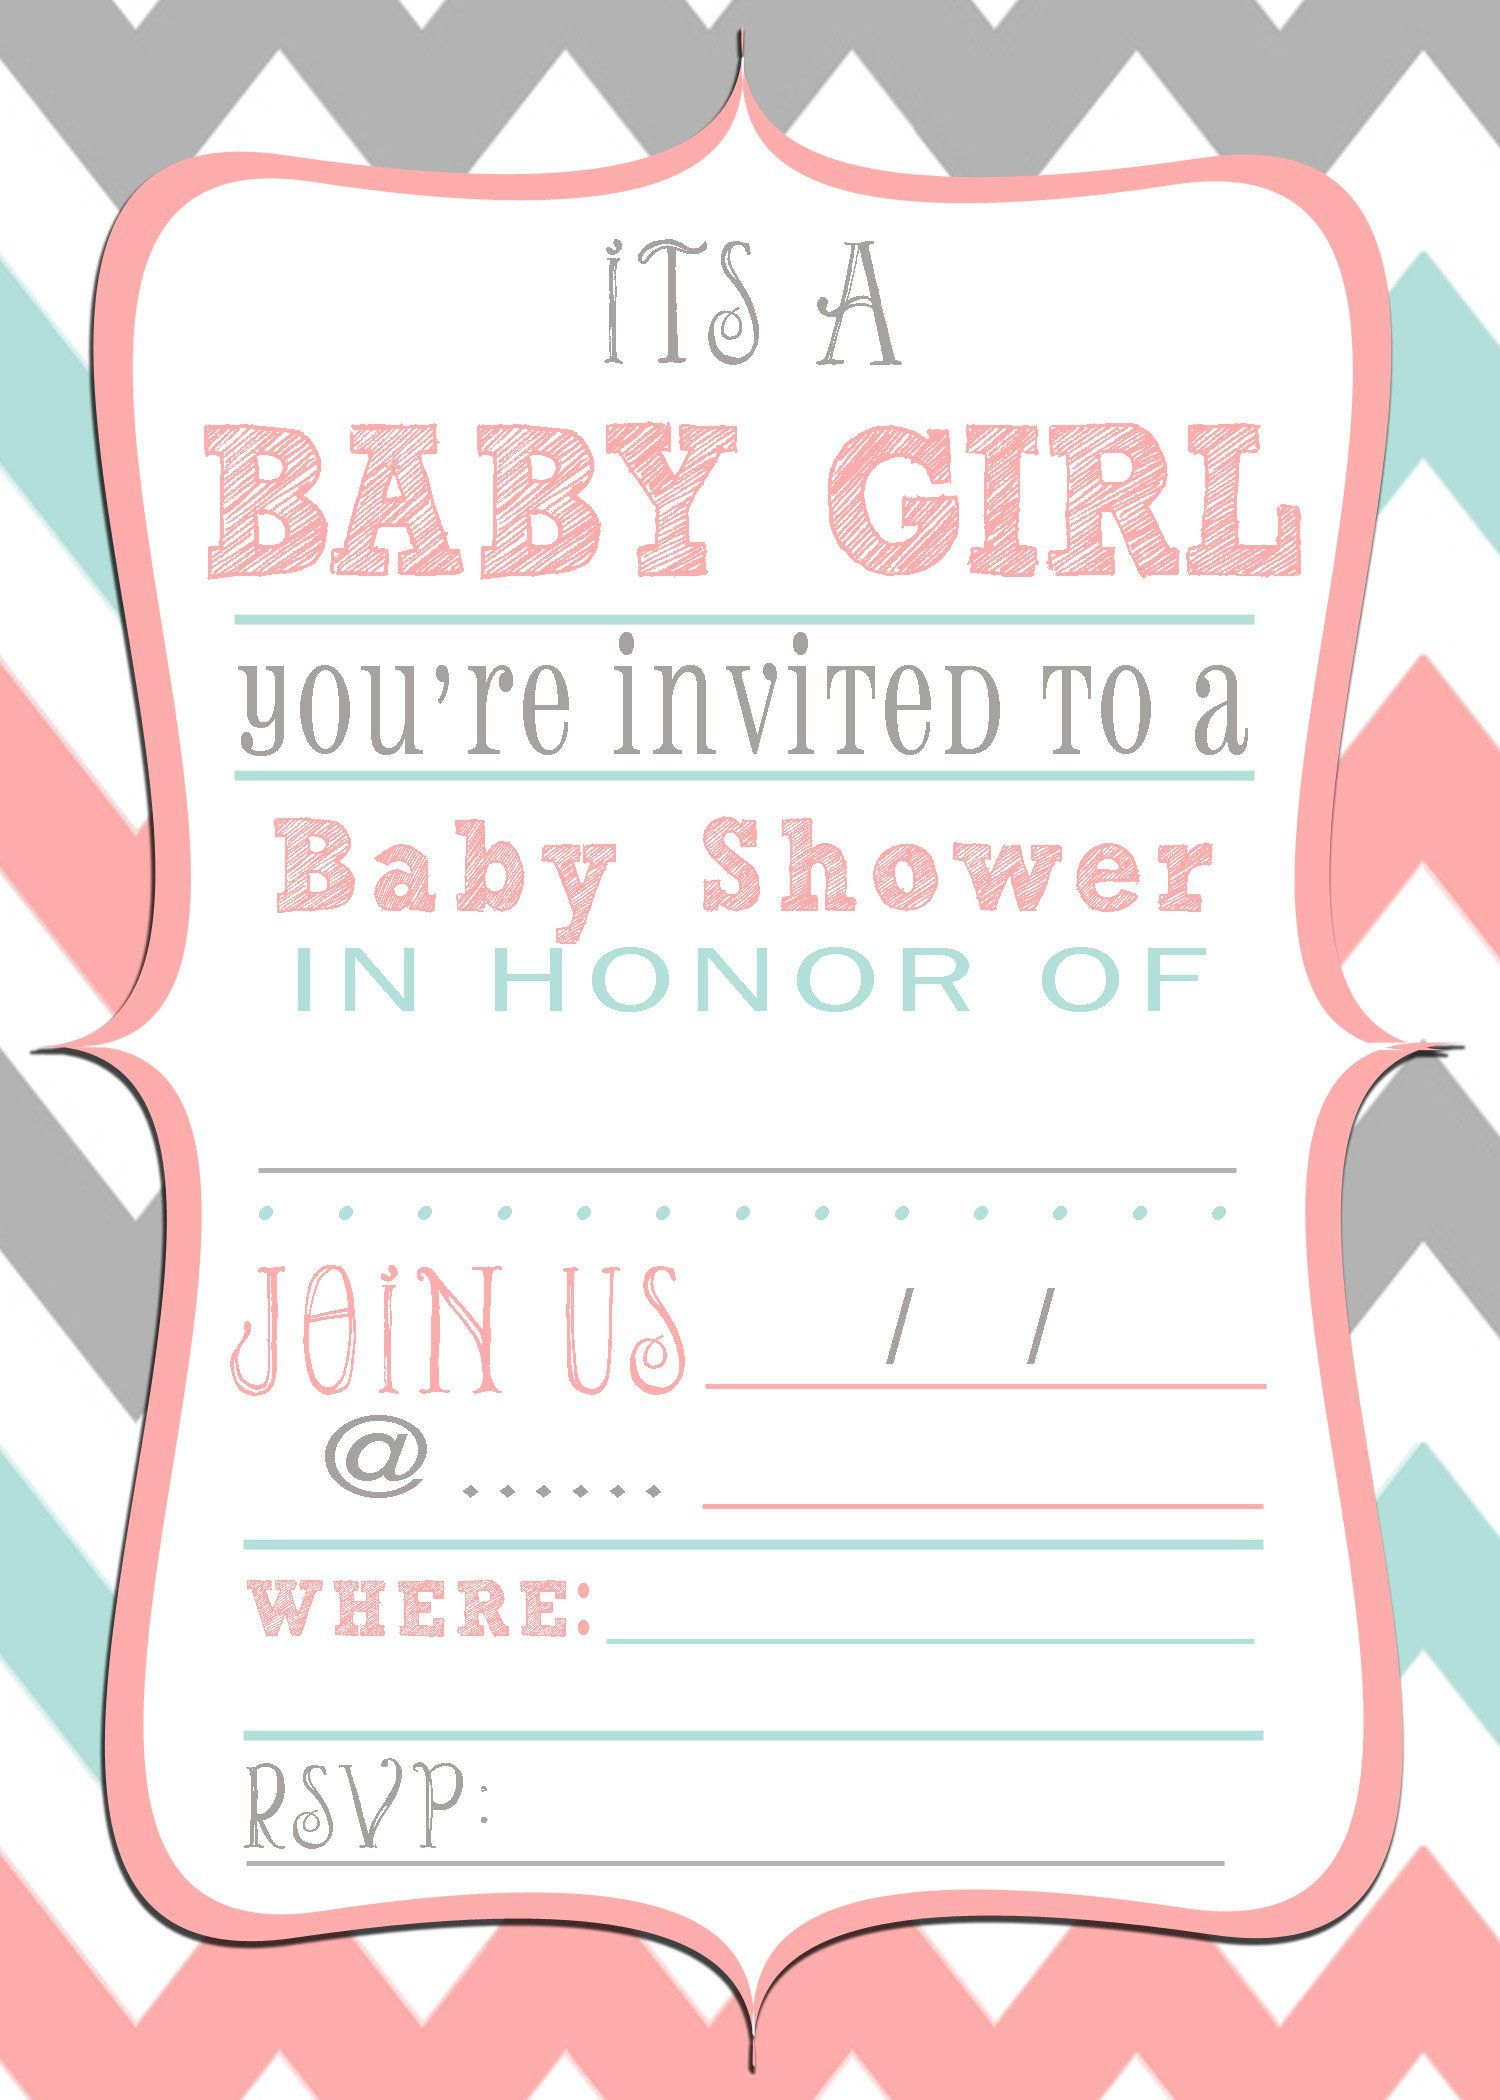 50 Free Baby Shower Printables For A Perfect Party Free Printable Baby Shower Invitations Free Baby Shower Free Baby Shower Invitations